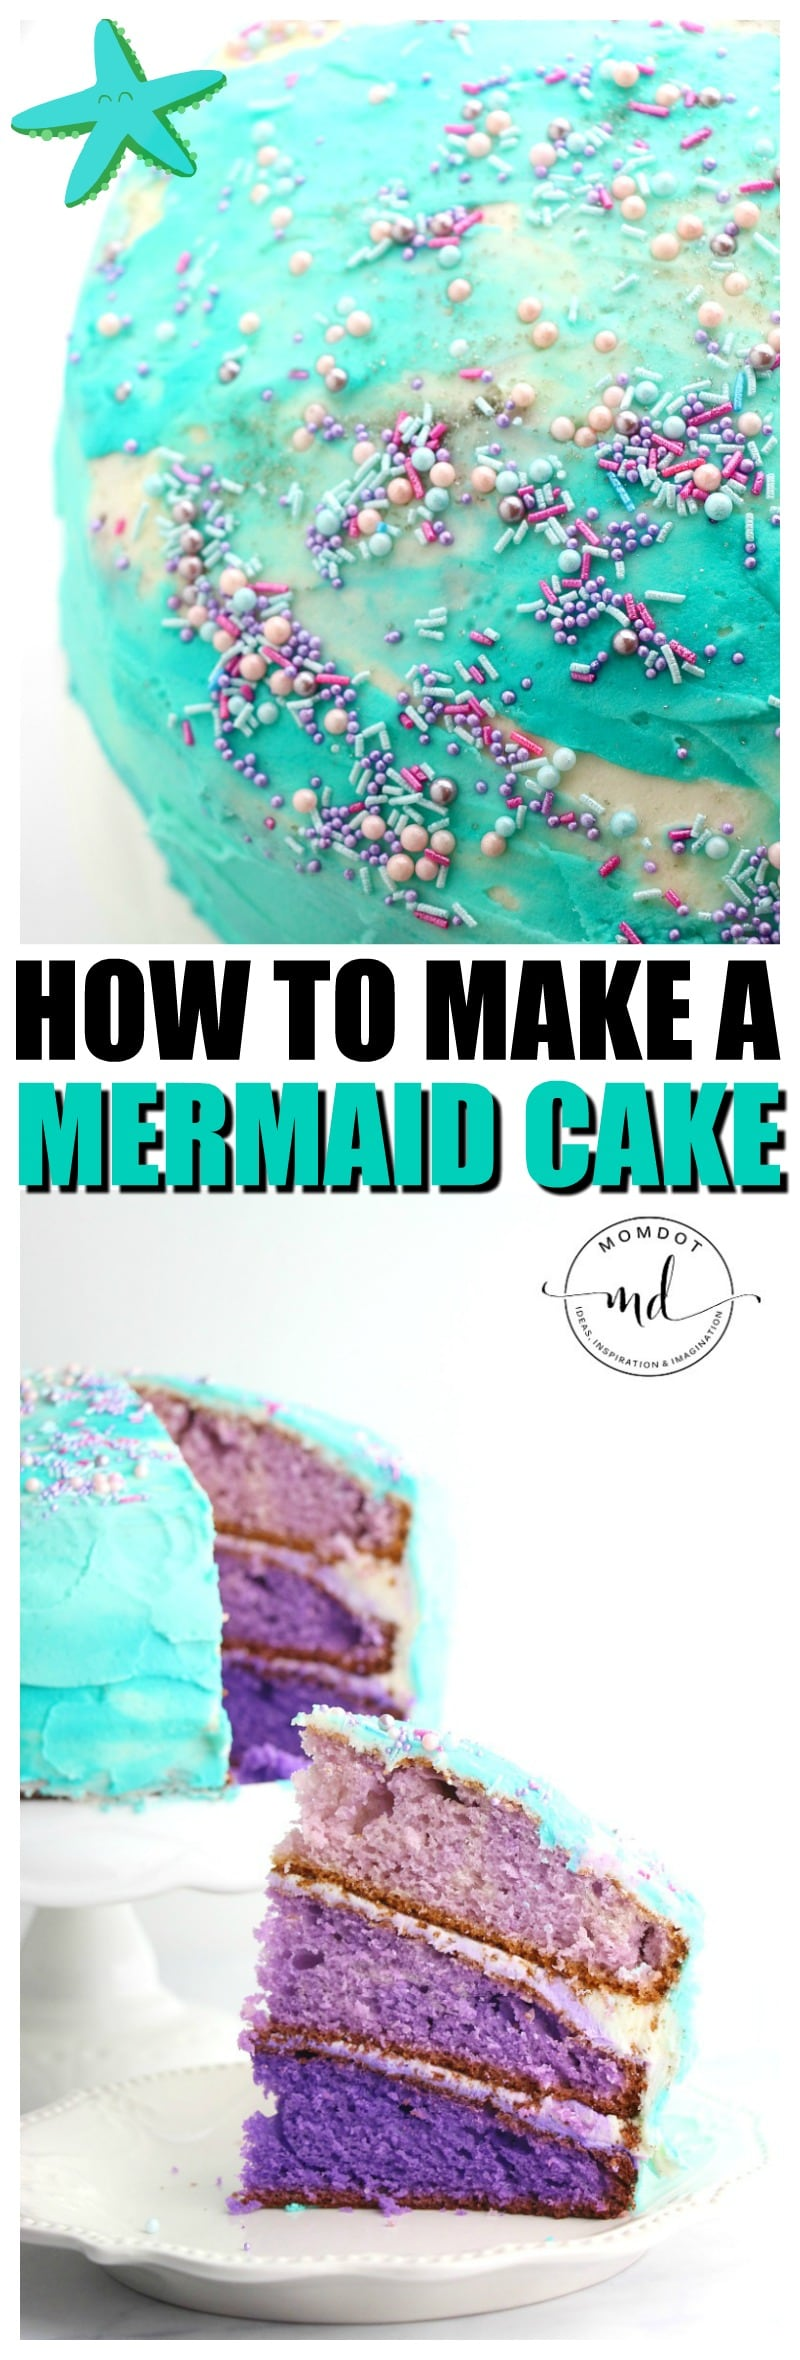 How to make a Mermaid Cake | MERMAID CAKE DIY